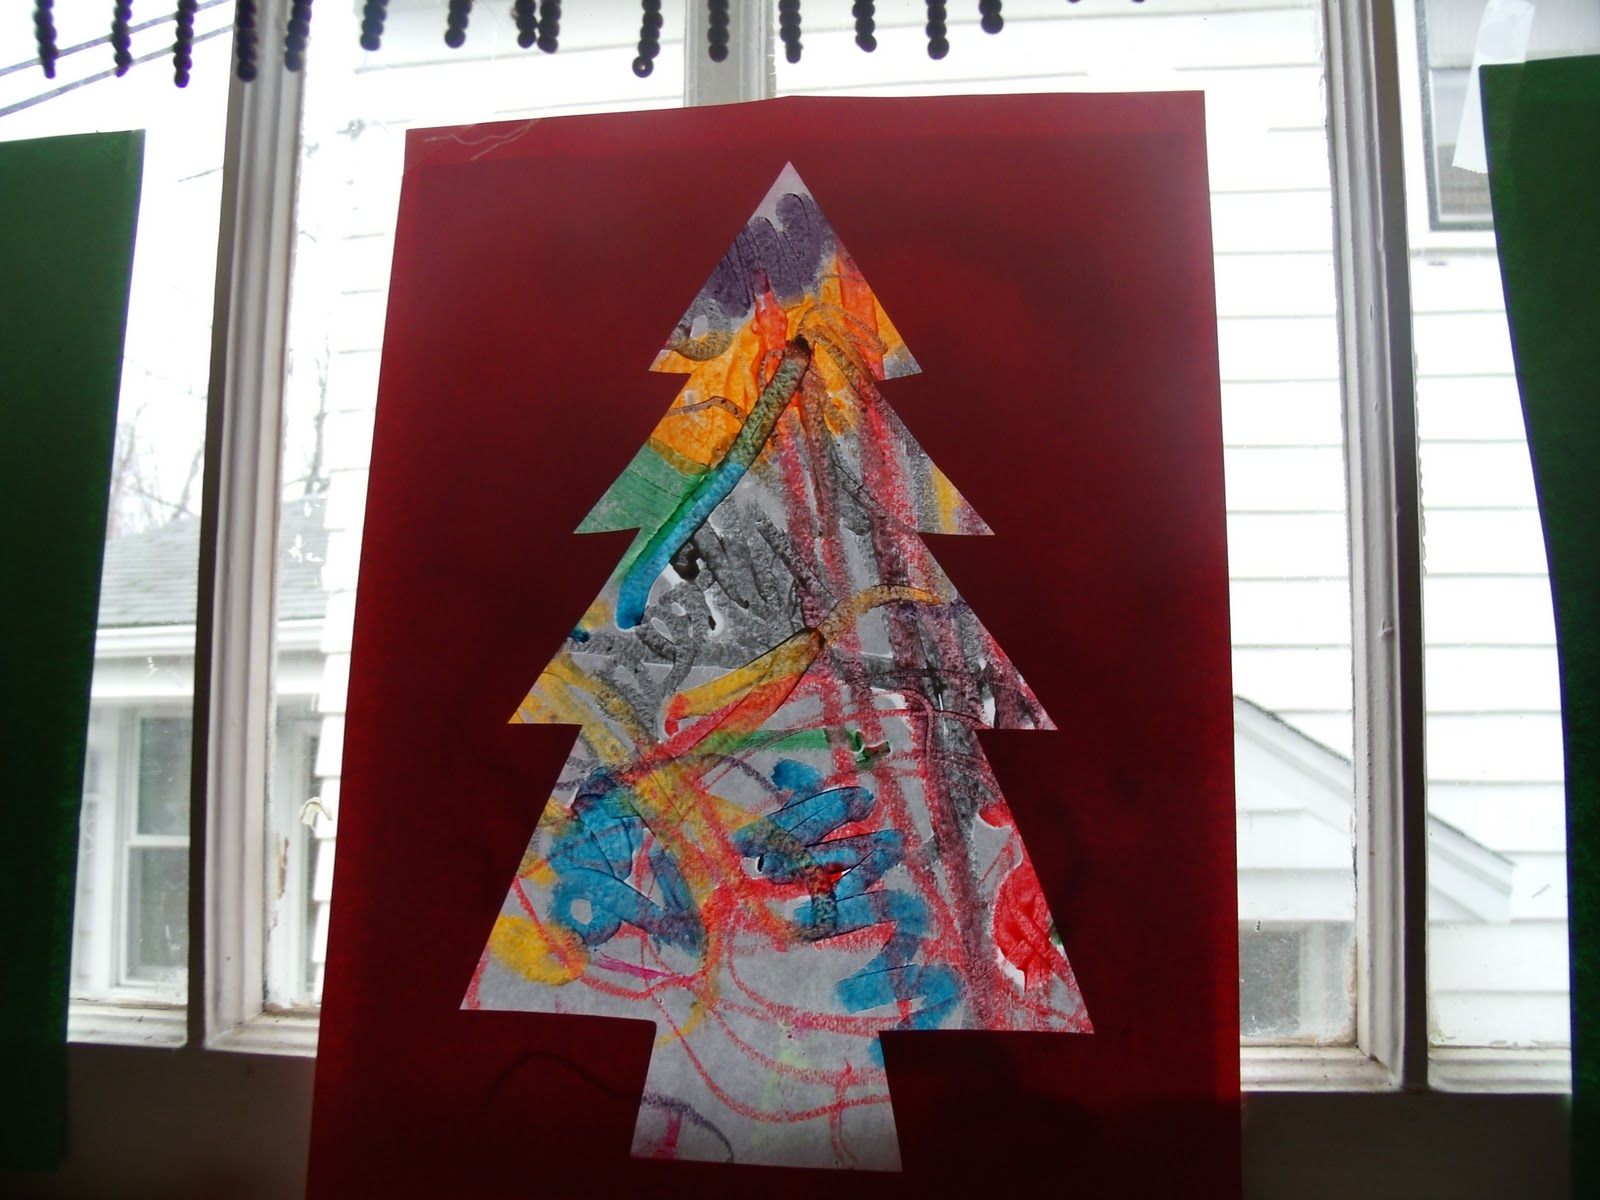 Making christmas ornaments with crayons - We Have A Few More Melted Crayon Drawings That I M Going To Try Making Into Ornaments Too I Ll Post What I Come Up With Shared On Playing With Words 365